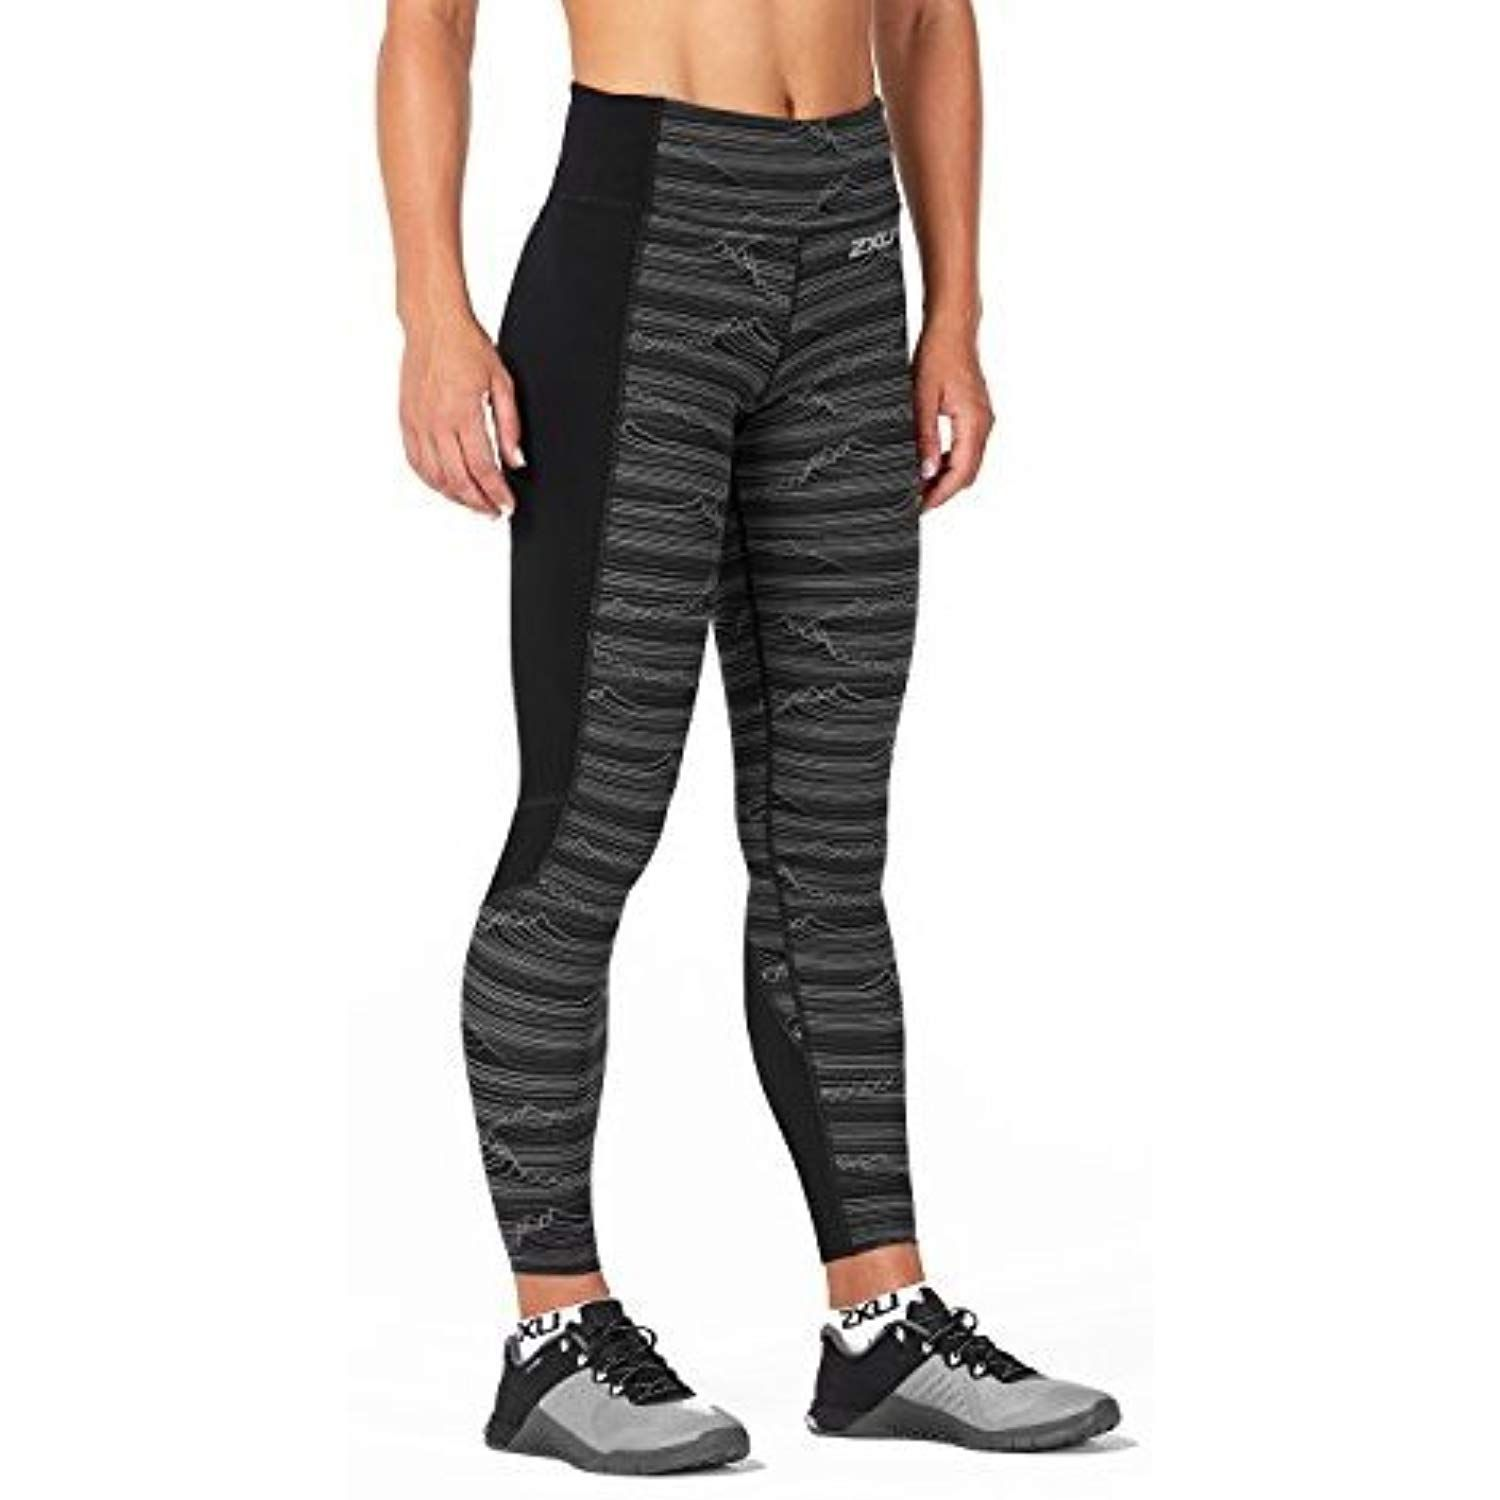 c7304c80b45f89 2XU Women's Fitness Compression Tights w/Storage, Phantom Waves/Black,  Medium -- Check out the image by visiting the link. (This is an affiliate  link) # ...